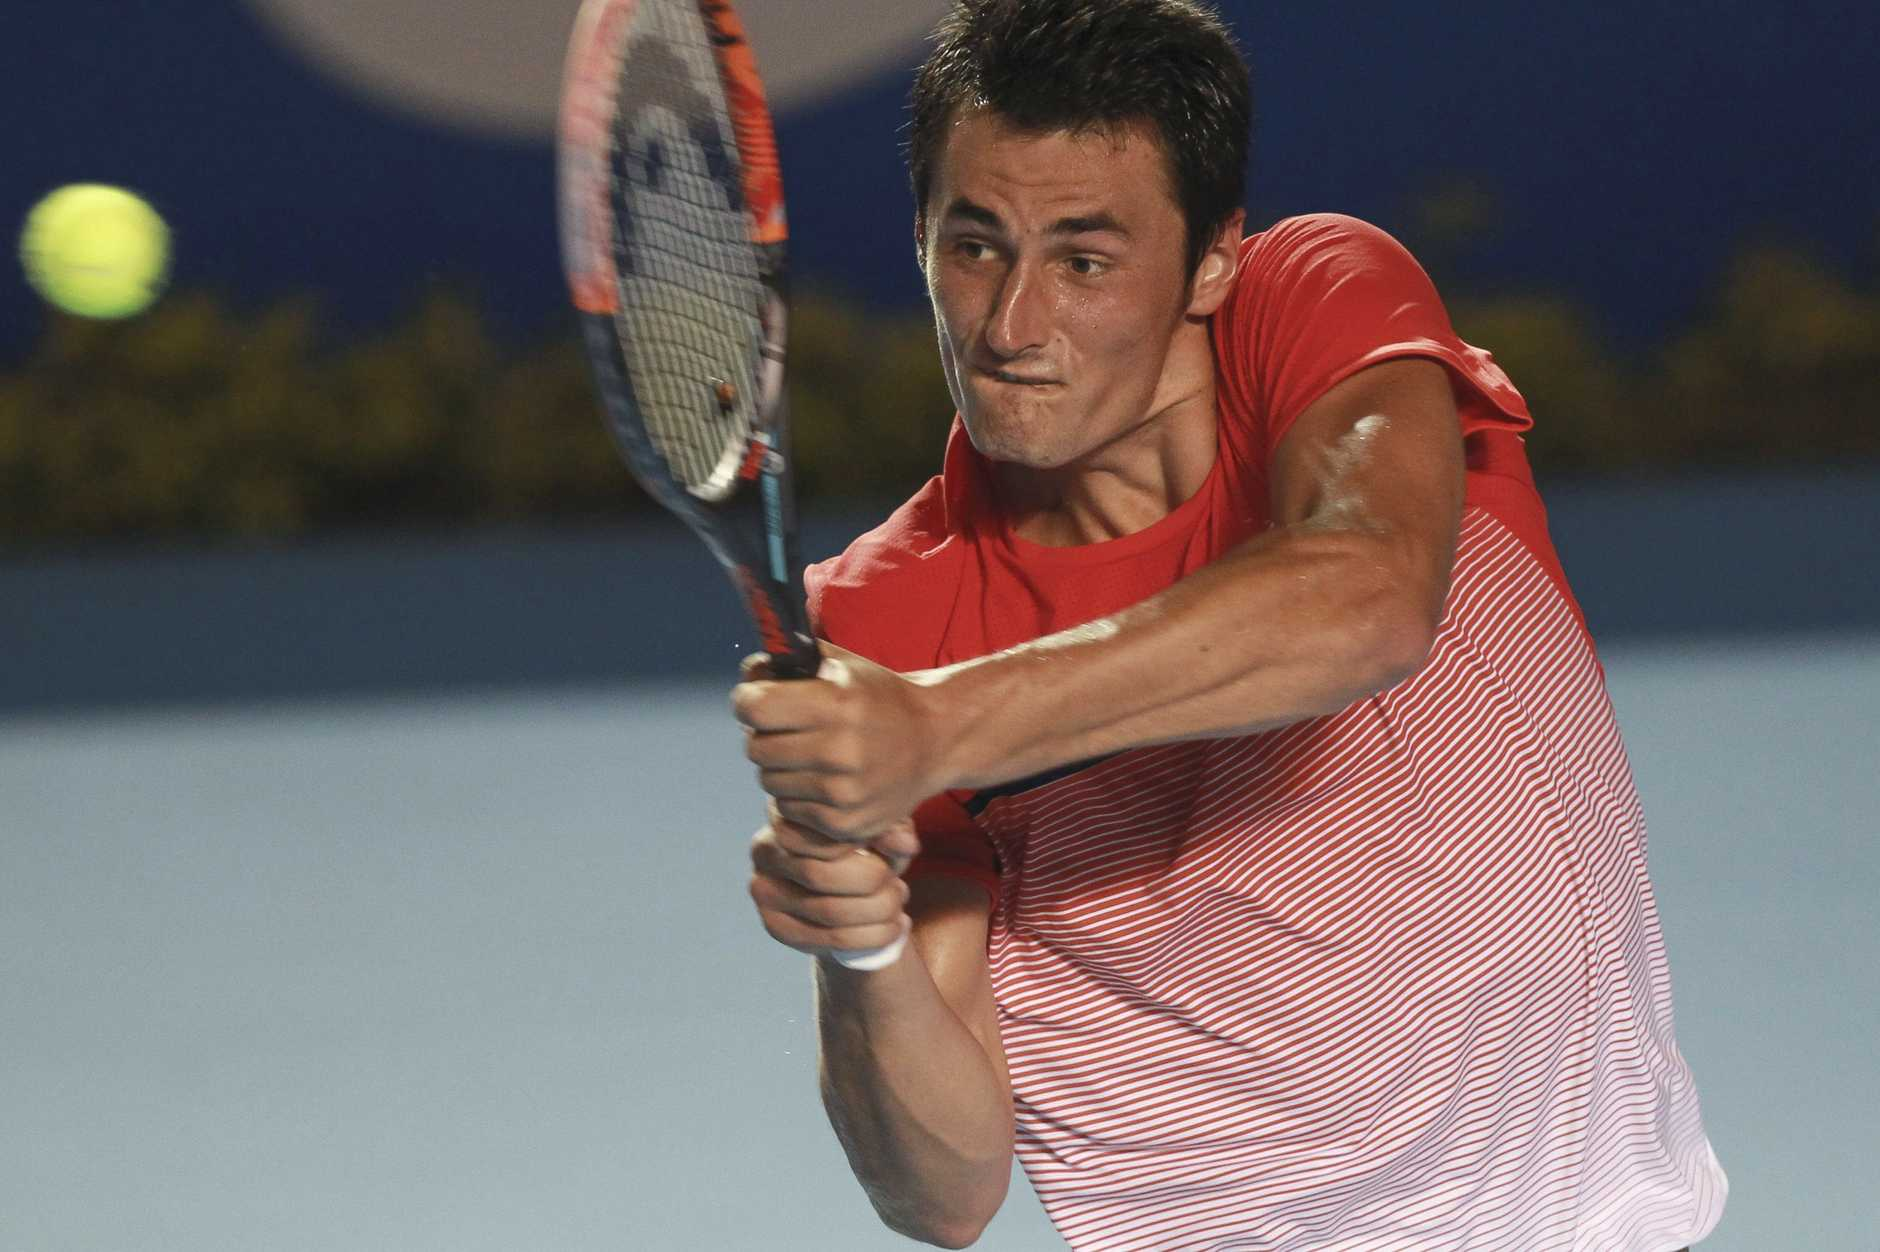 Bernard Tomic in action during the final of the ATP event in Mexico. Photo: AAP Image.